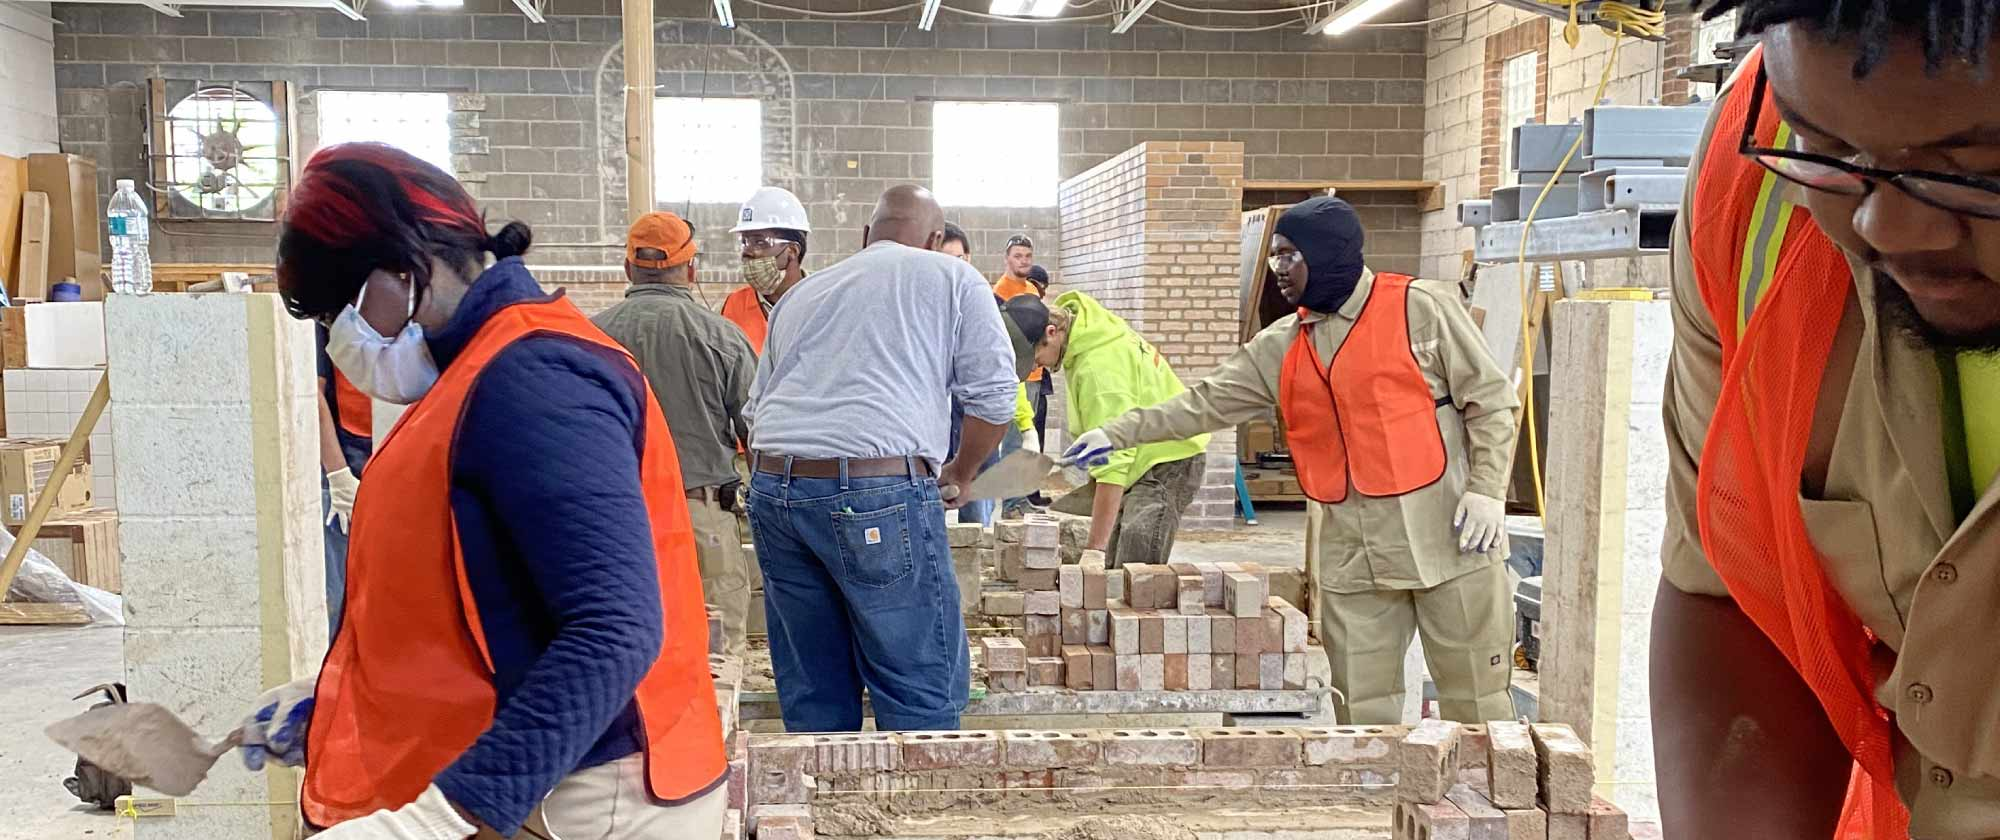 Building Union Diversity (BUD) workers building with bricks in a shop